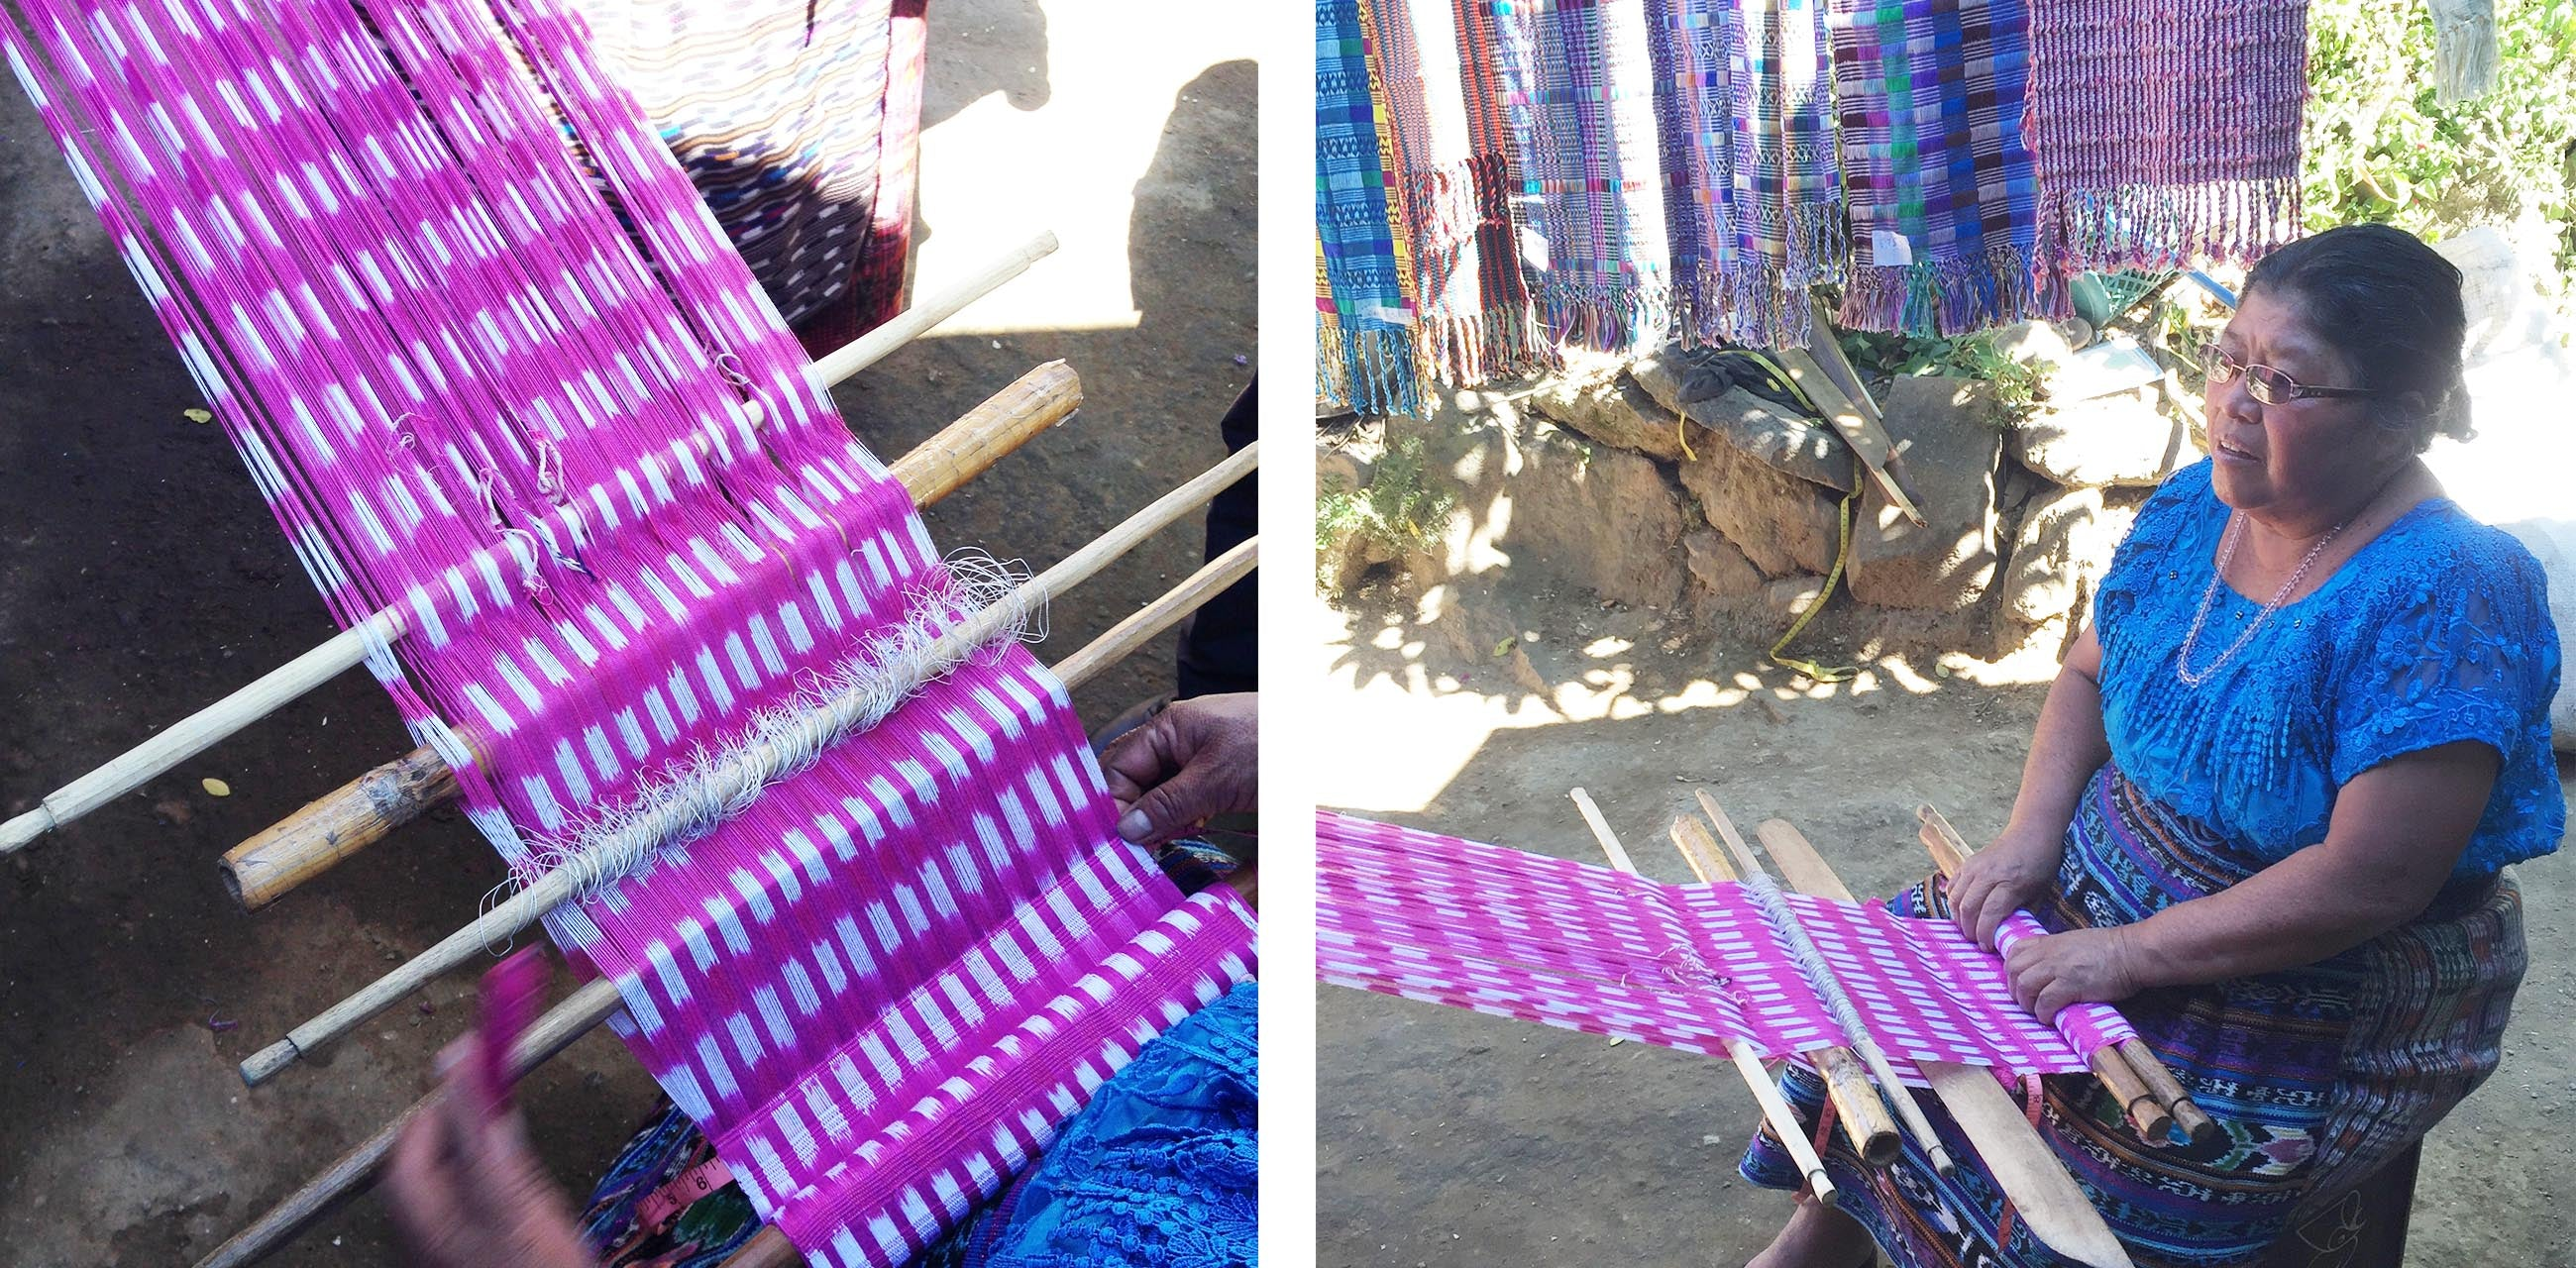 An image of a woman using a back strap loom to weave brightly coloured fabrics in Guatemala